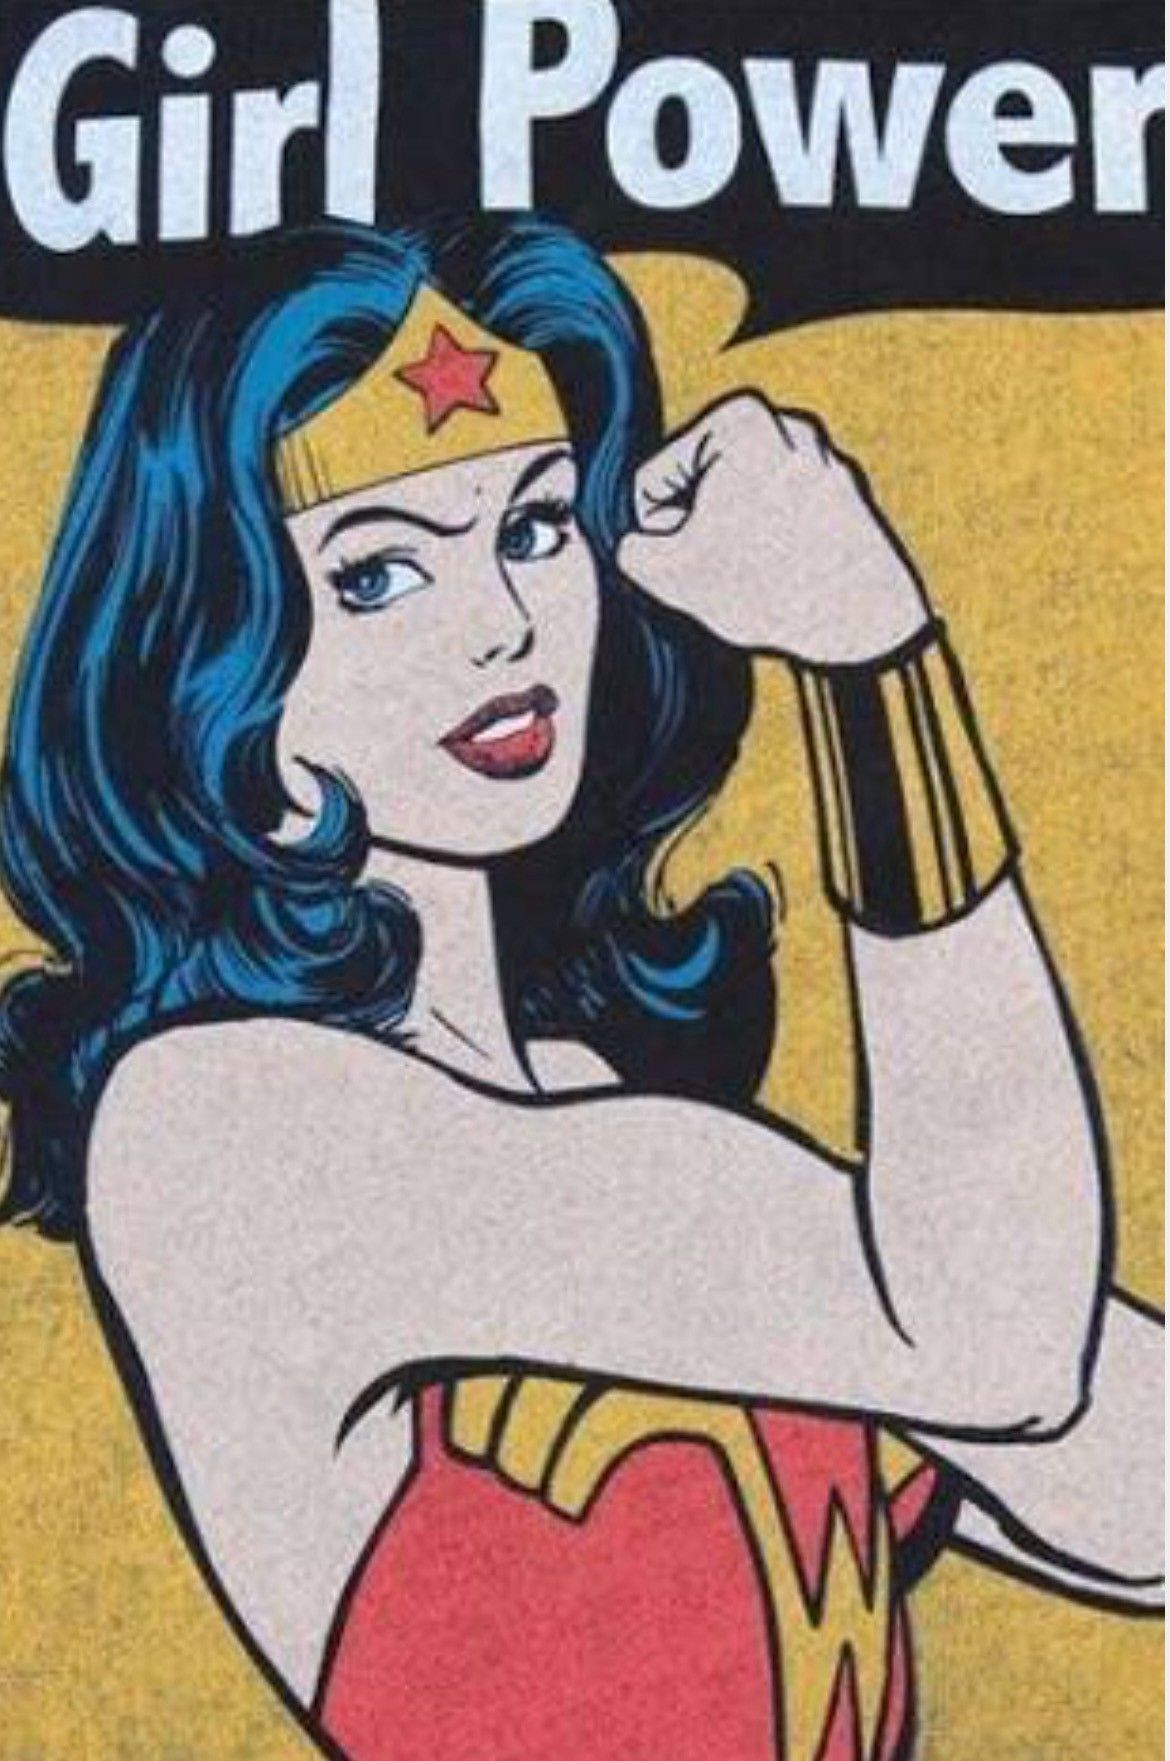 girl power tattoo quotes diy automotive wiring diagrams vintage wonder woman comics and feminism